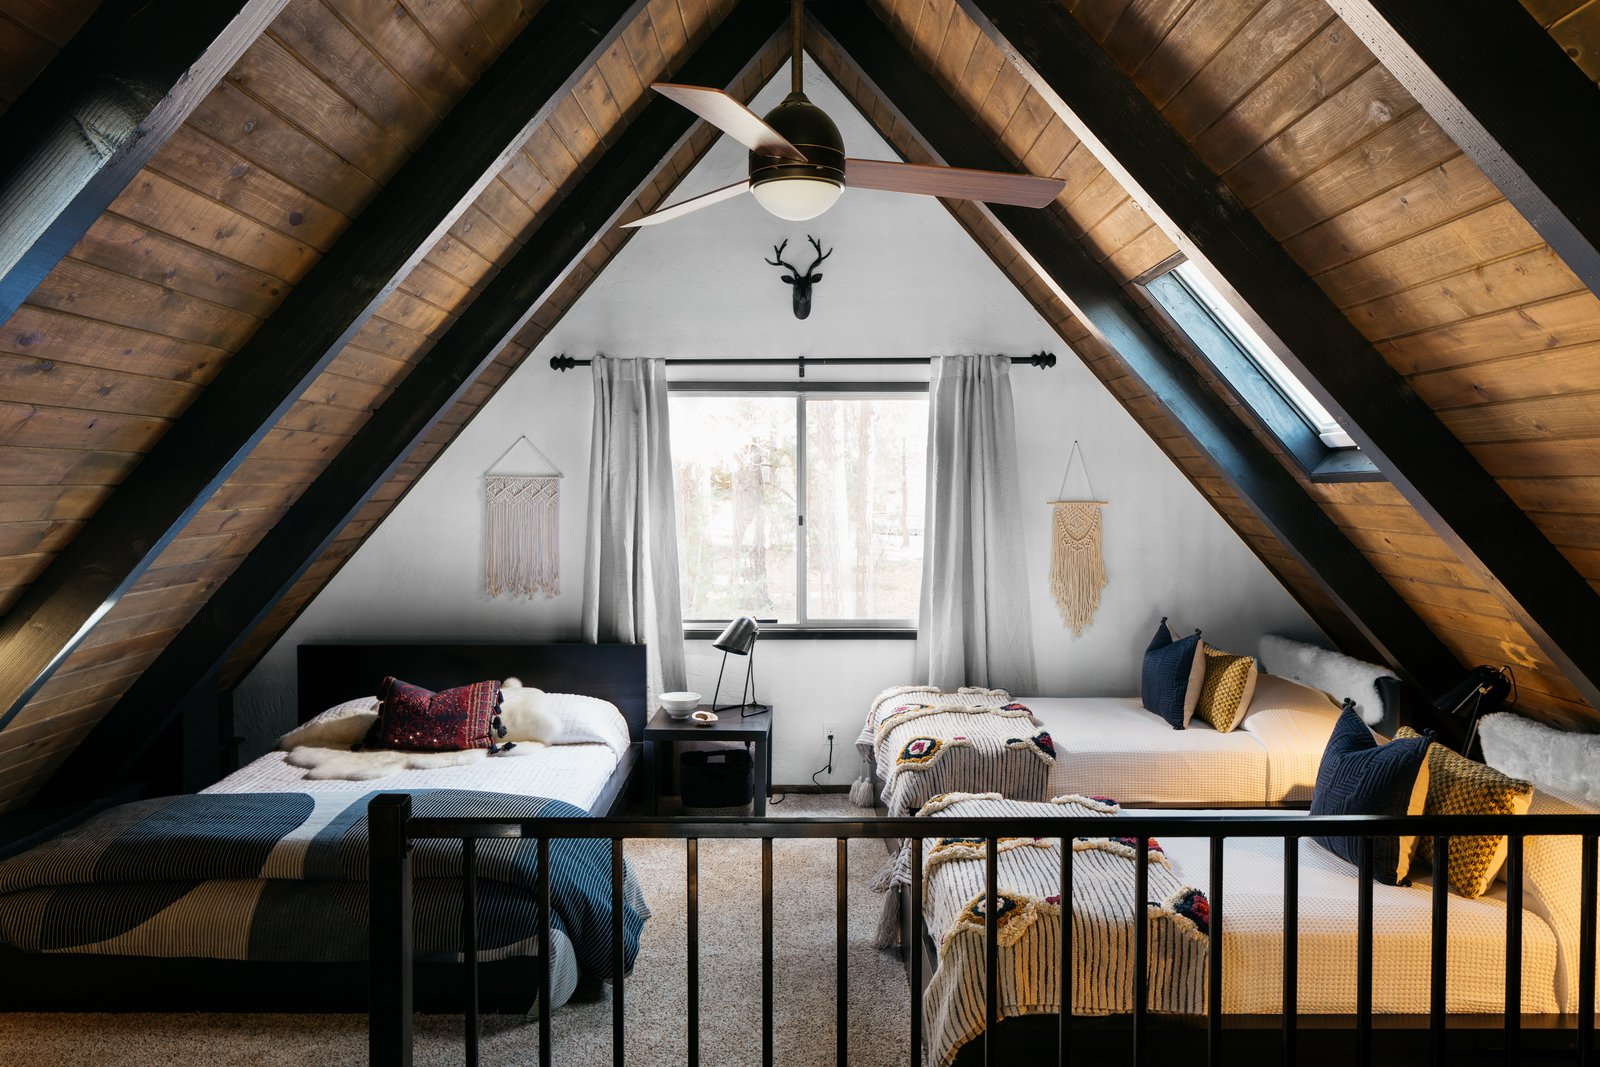 """Bedroom, Bed, Night Stands, Ceiling, and Carpet """"We wanted to create a bohemian feel in the bedroom and the loft spaces,  Bedroom Carpet Ceiling Night Stands Photos from A 1970s A-Frame Cabin in Big Bear Is Brought Back to Life"""